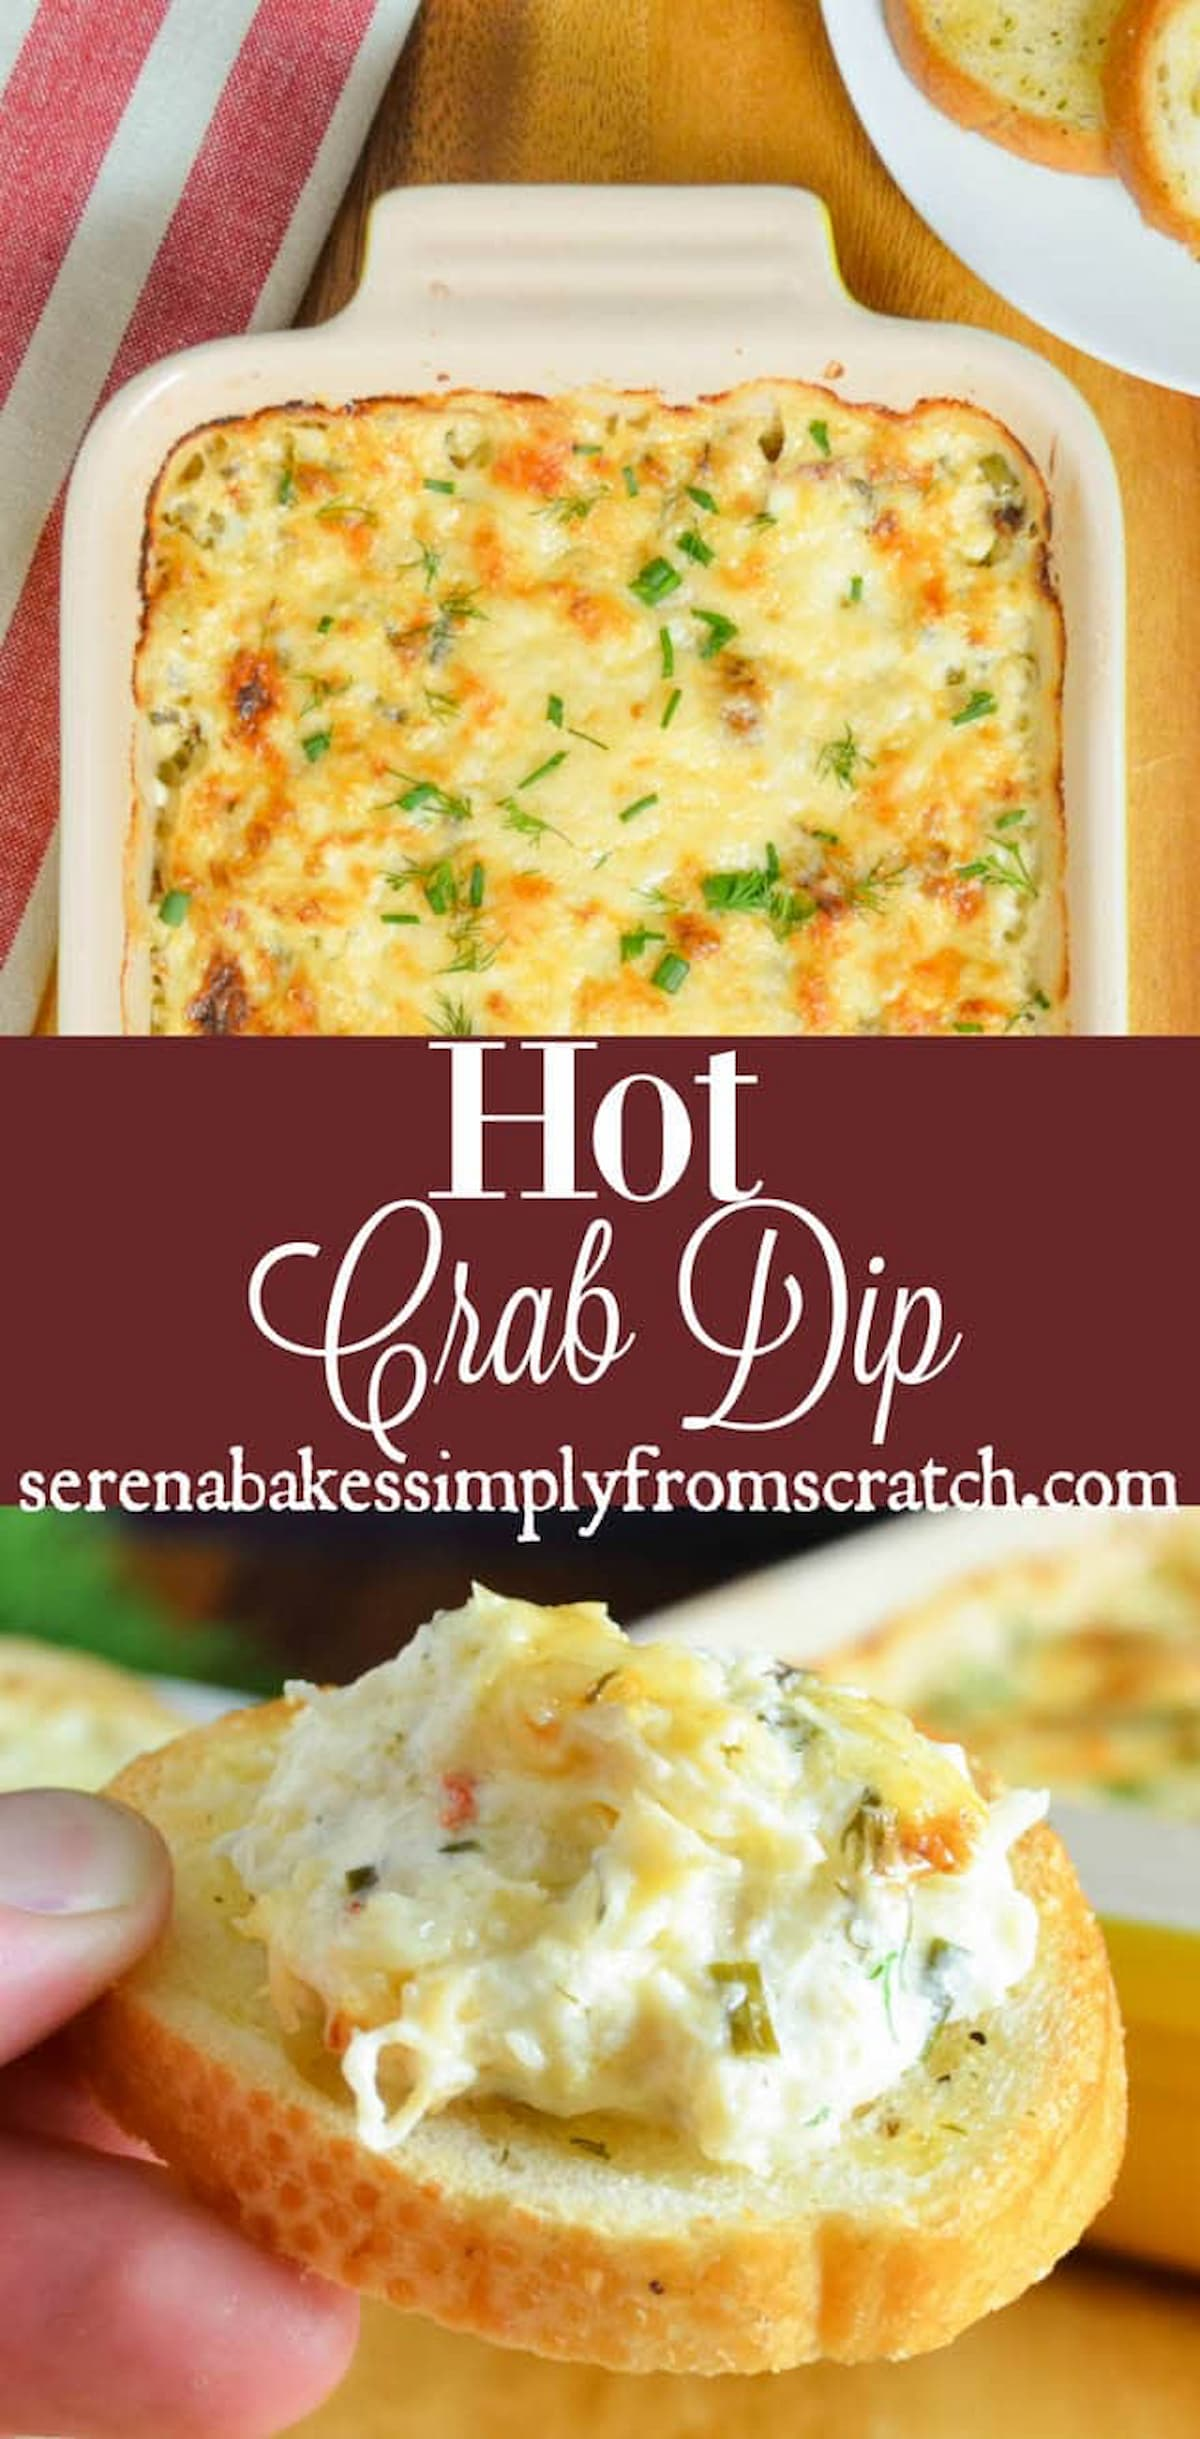 Hot Crab Dip is a favorite party appetizer loaded with lots of Dungeness Crab in a cheesy herb base recipe from Serena Bakes Simply From Scratch.